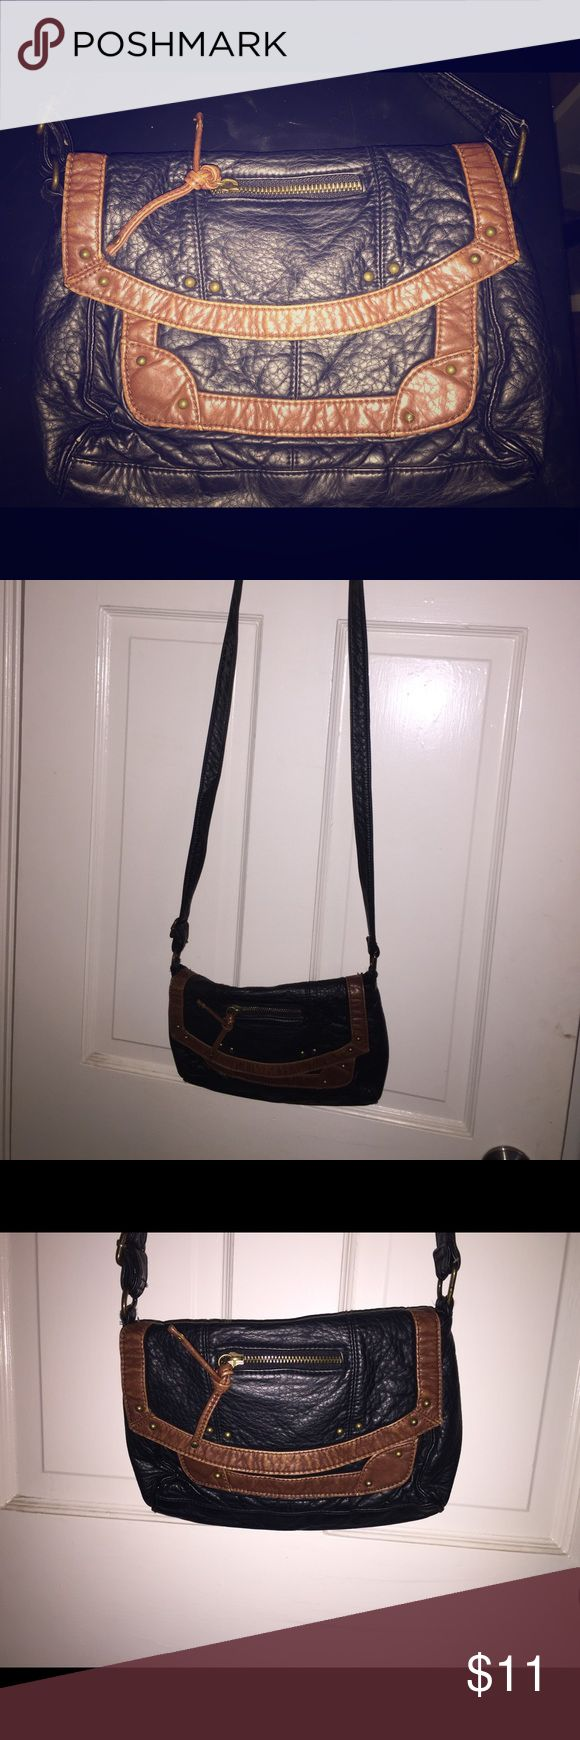 Crossbody small bag Black and brown crossbody, with worn faux leather look, good condition, American Eagle Outfitters Bags Crossbody Bags